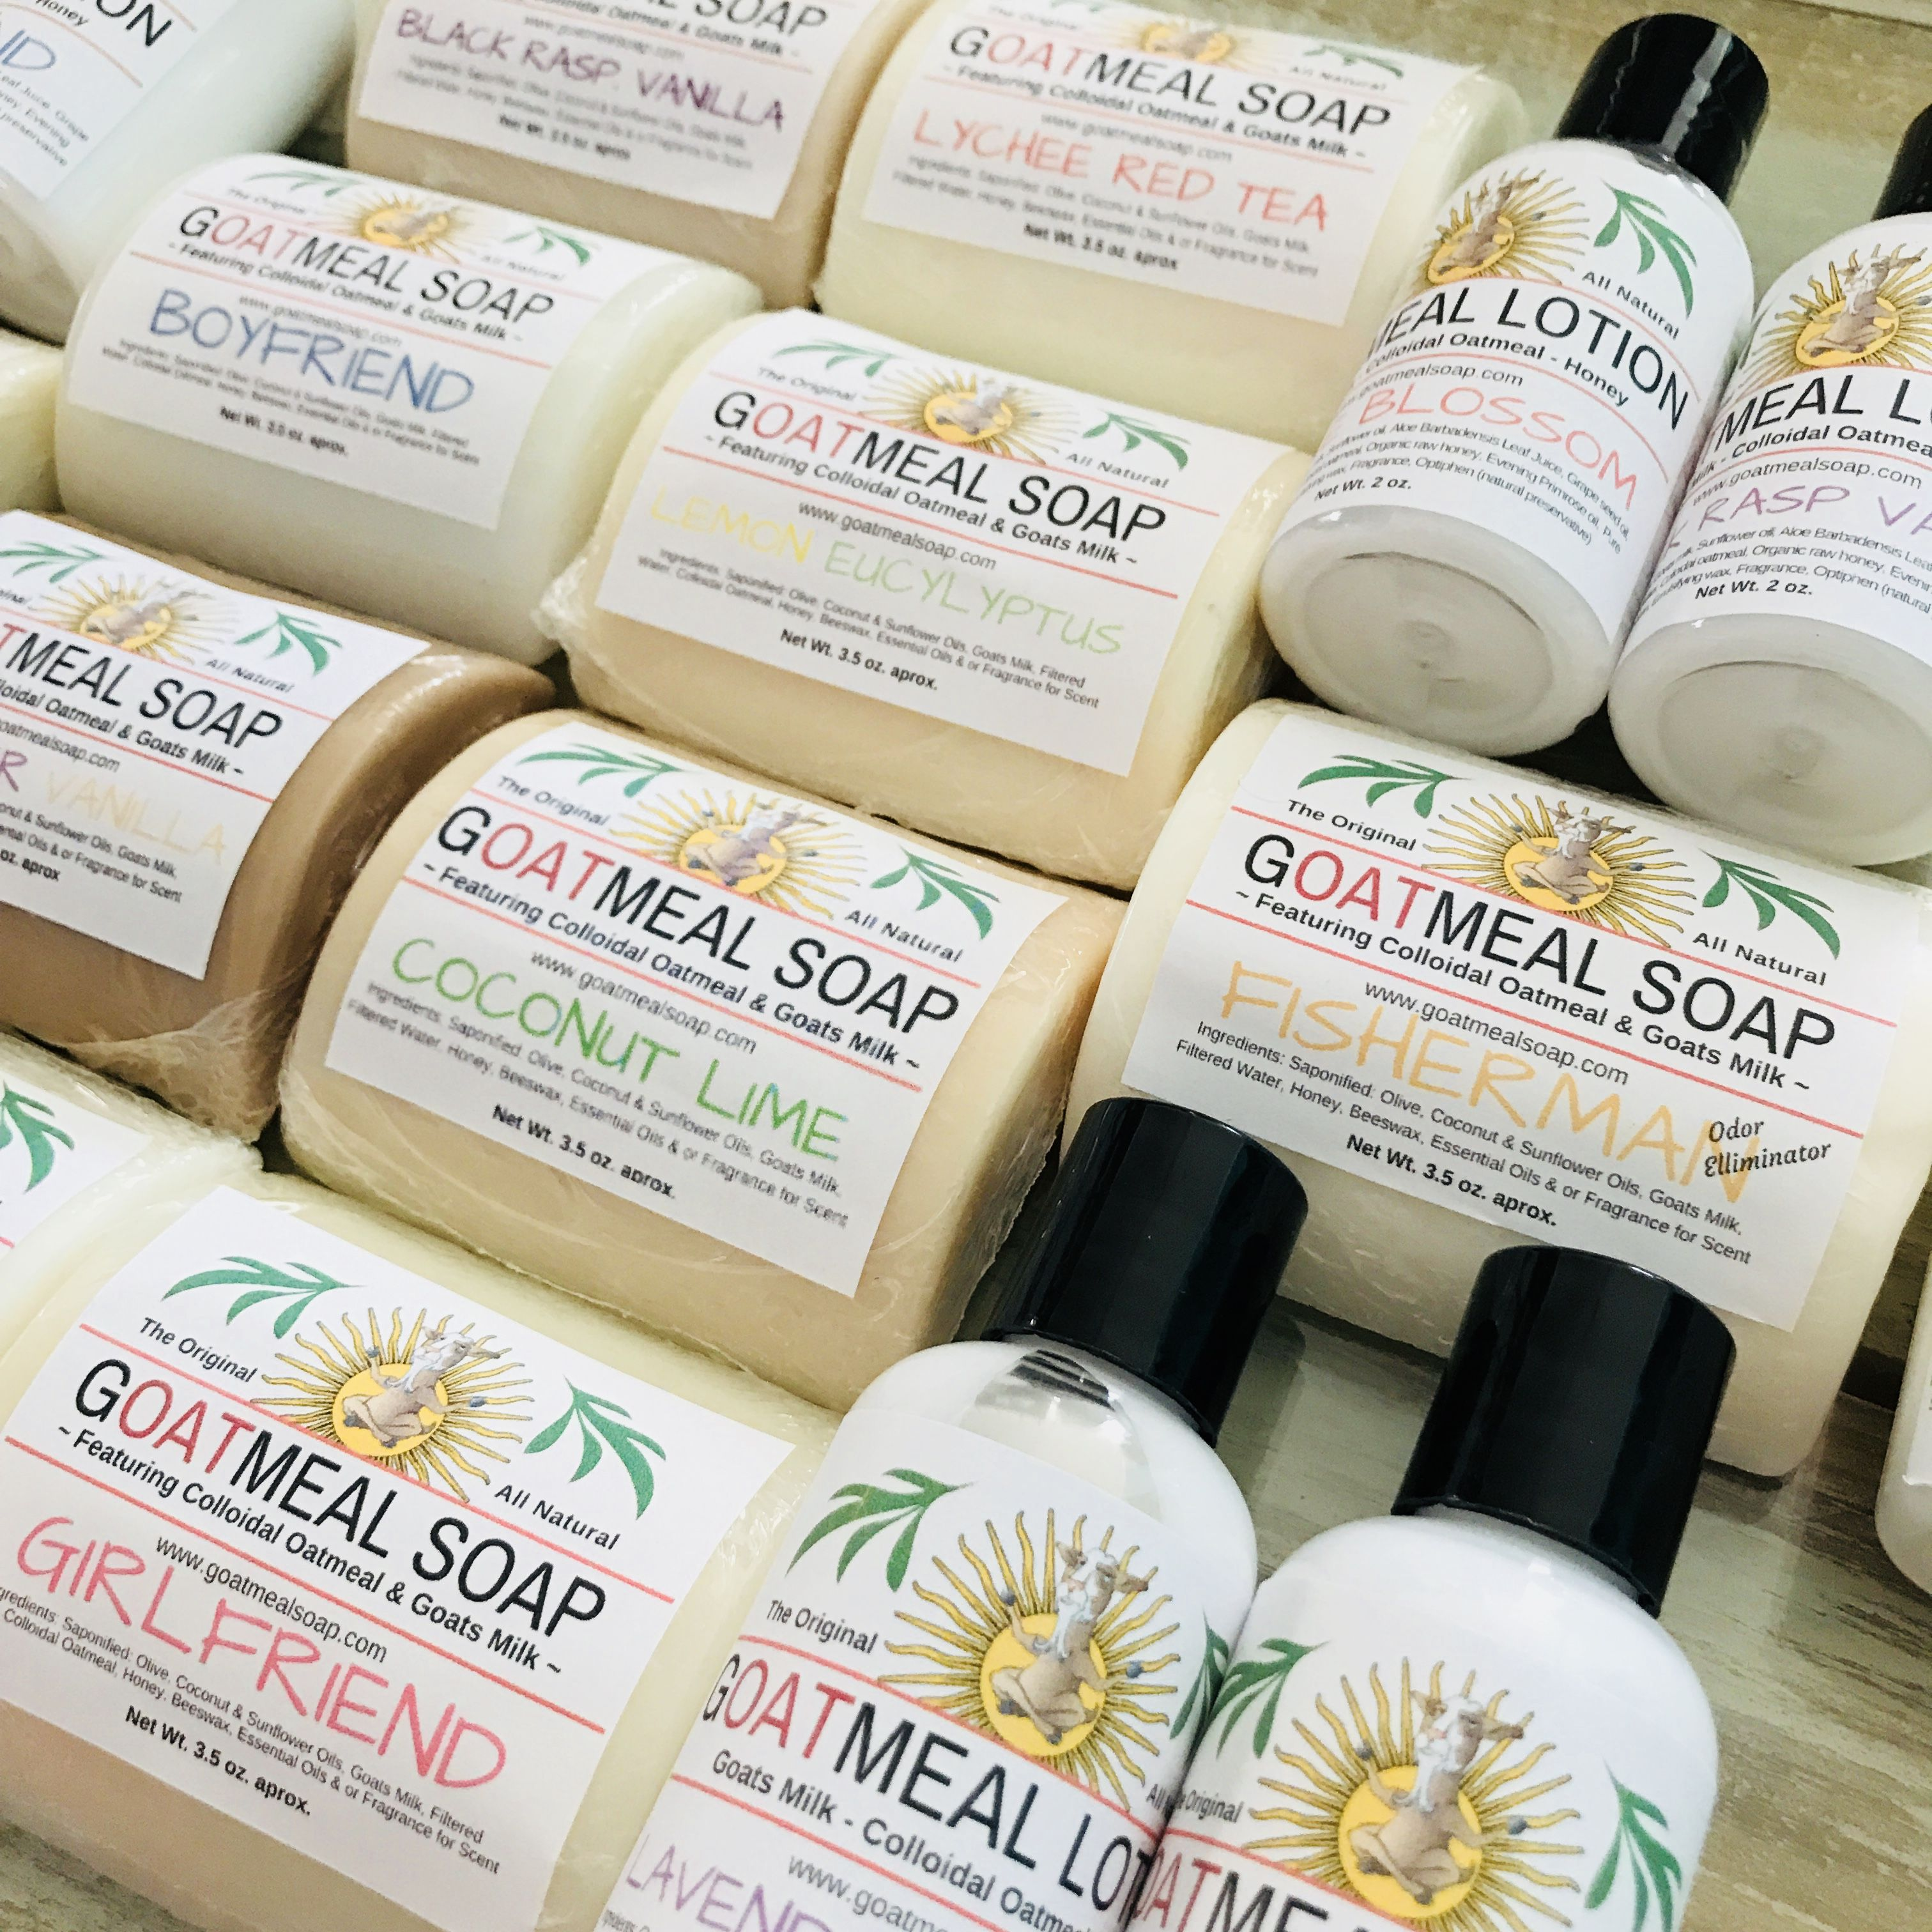 Goat Milk & Colloidal Oatmeal Nature Inspired soap